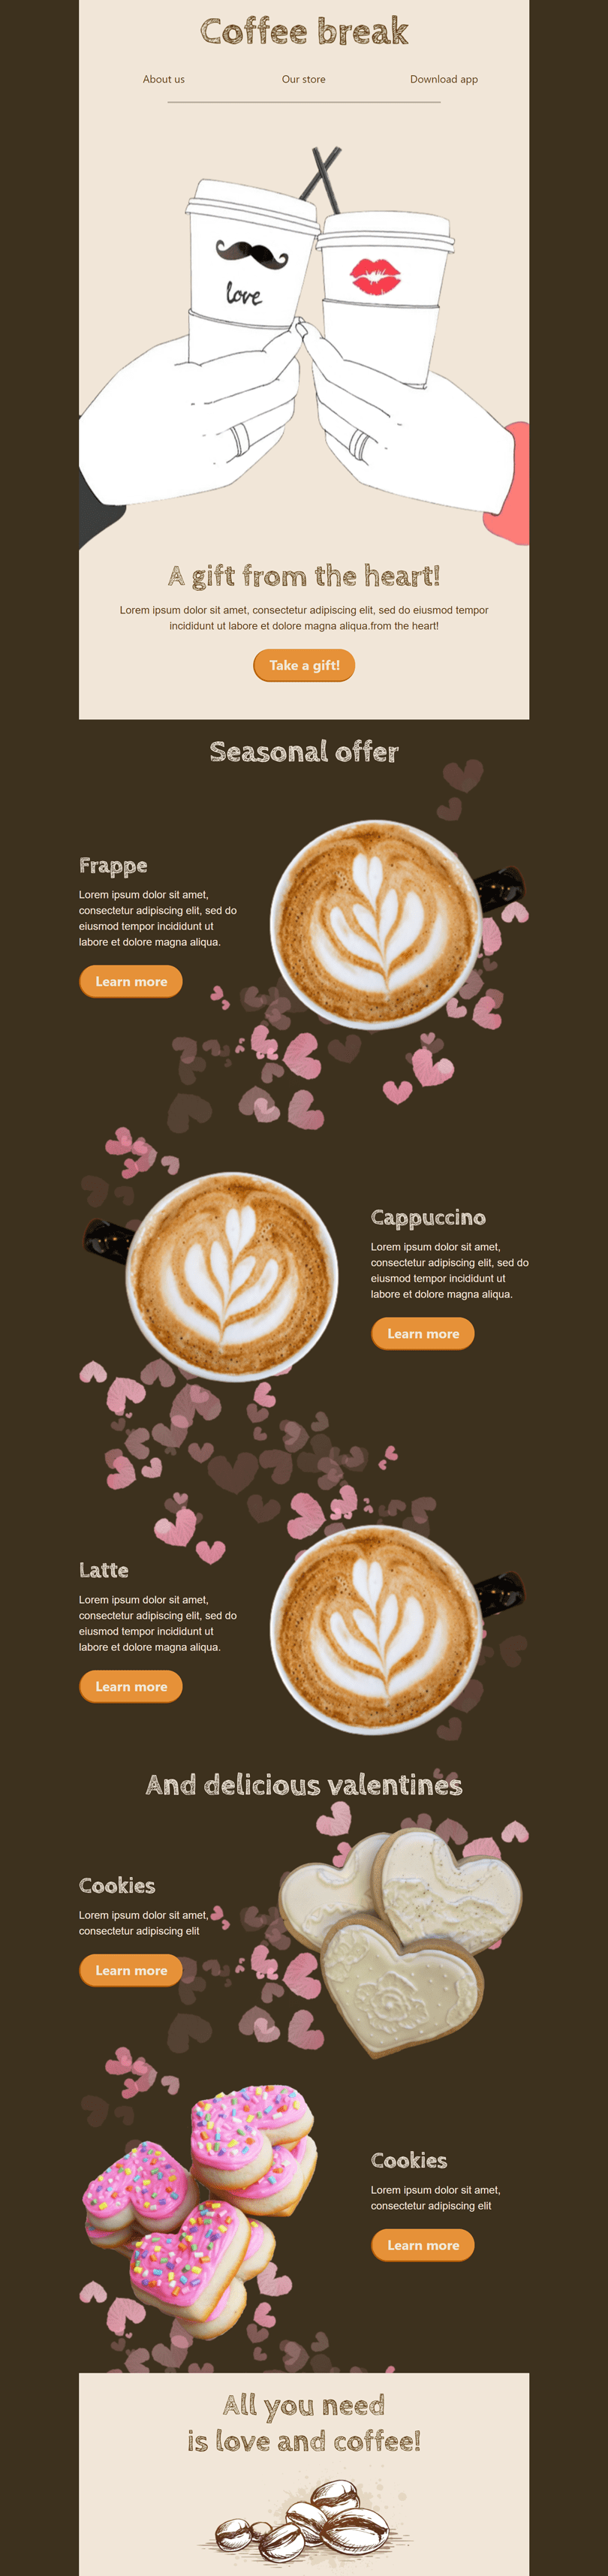 Valentine's Day Email Template «Coffee Break» for Beverages industry desktop view